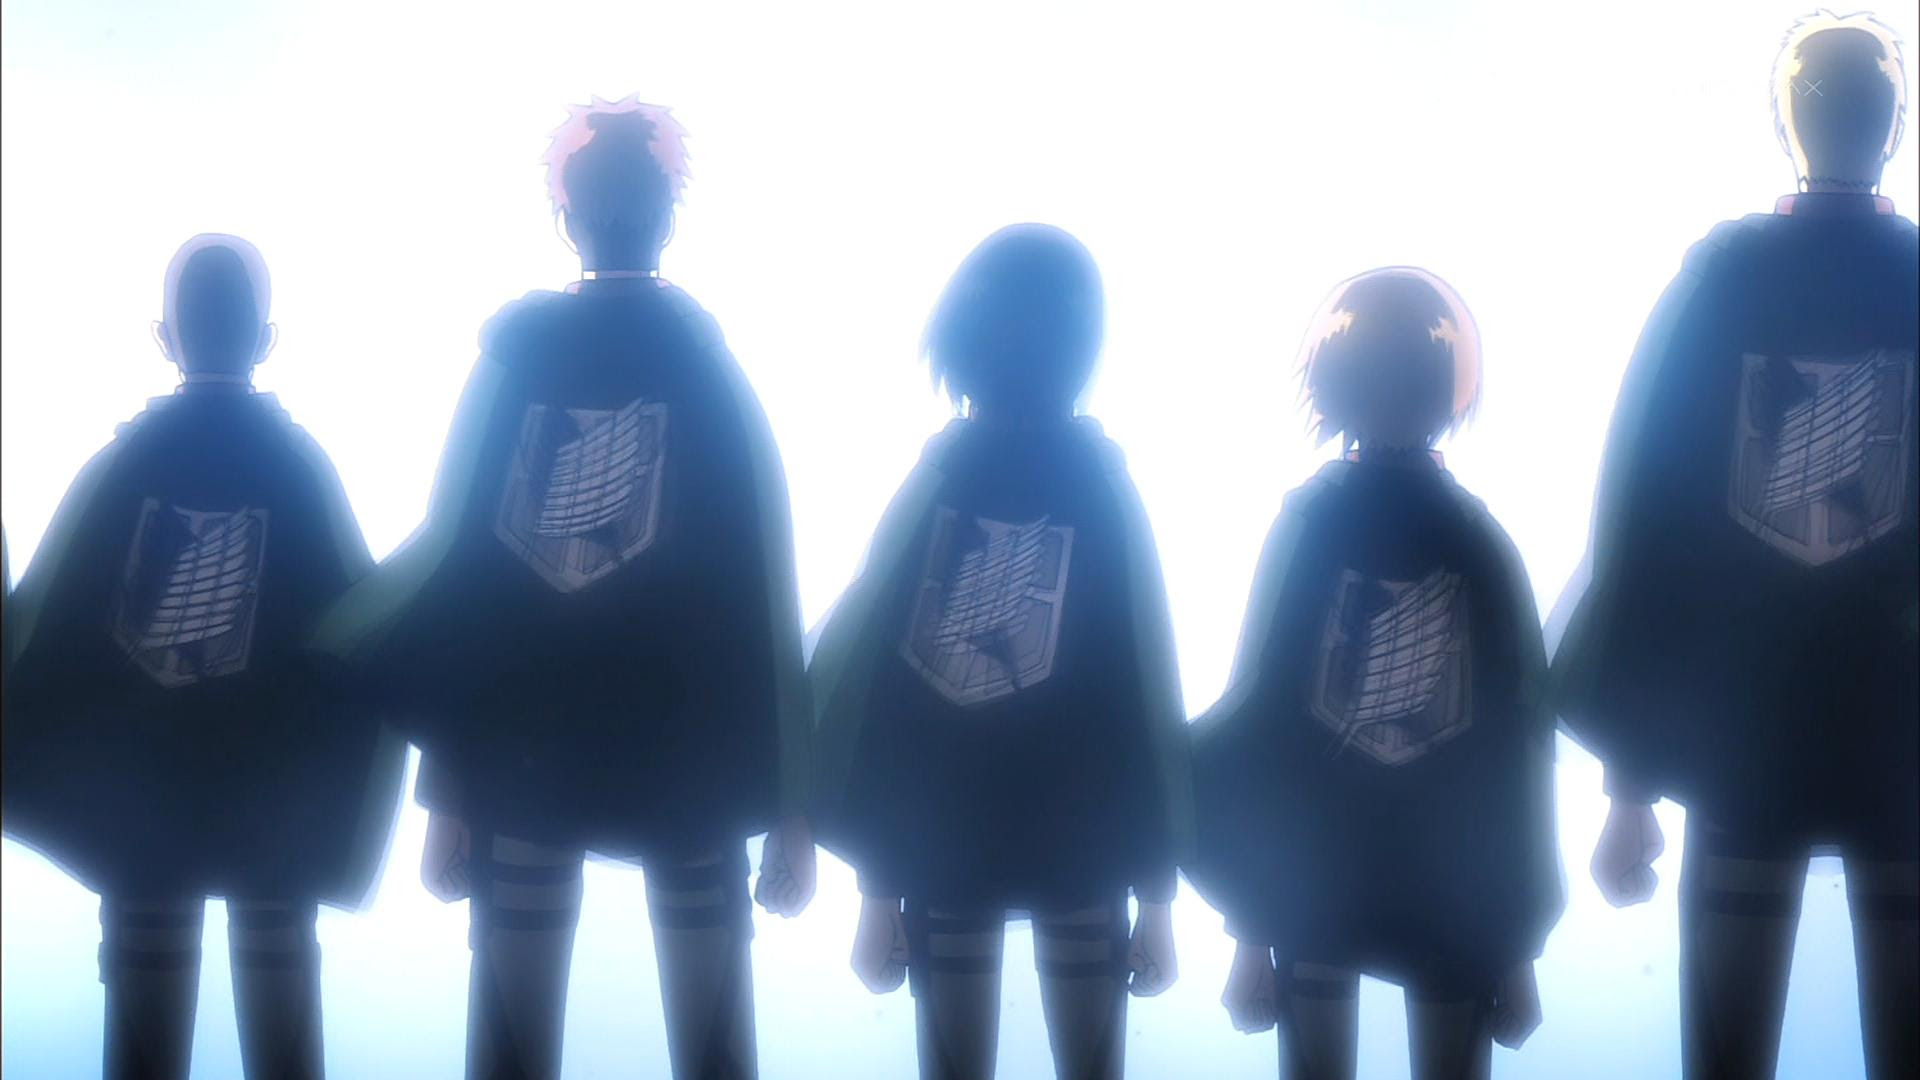 Attack On Titan Episode 16 Now What Should We Do Night Time Counter Attack Number 3 Preview Images And Synopsis One Pixel Jump